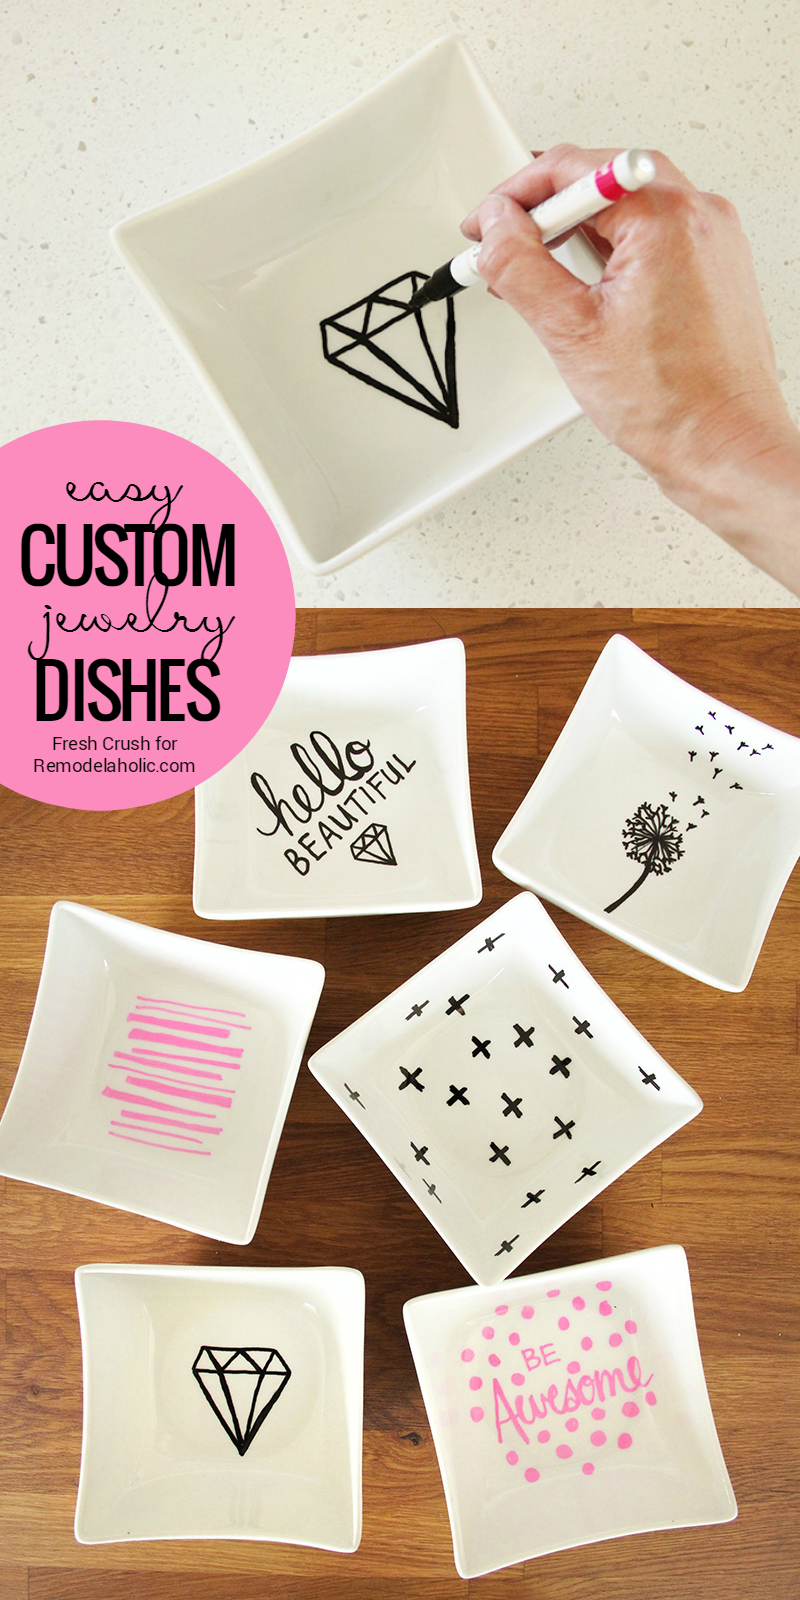 These custom jewelry dishes are so easy to make, and they'll make